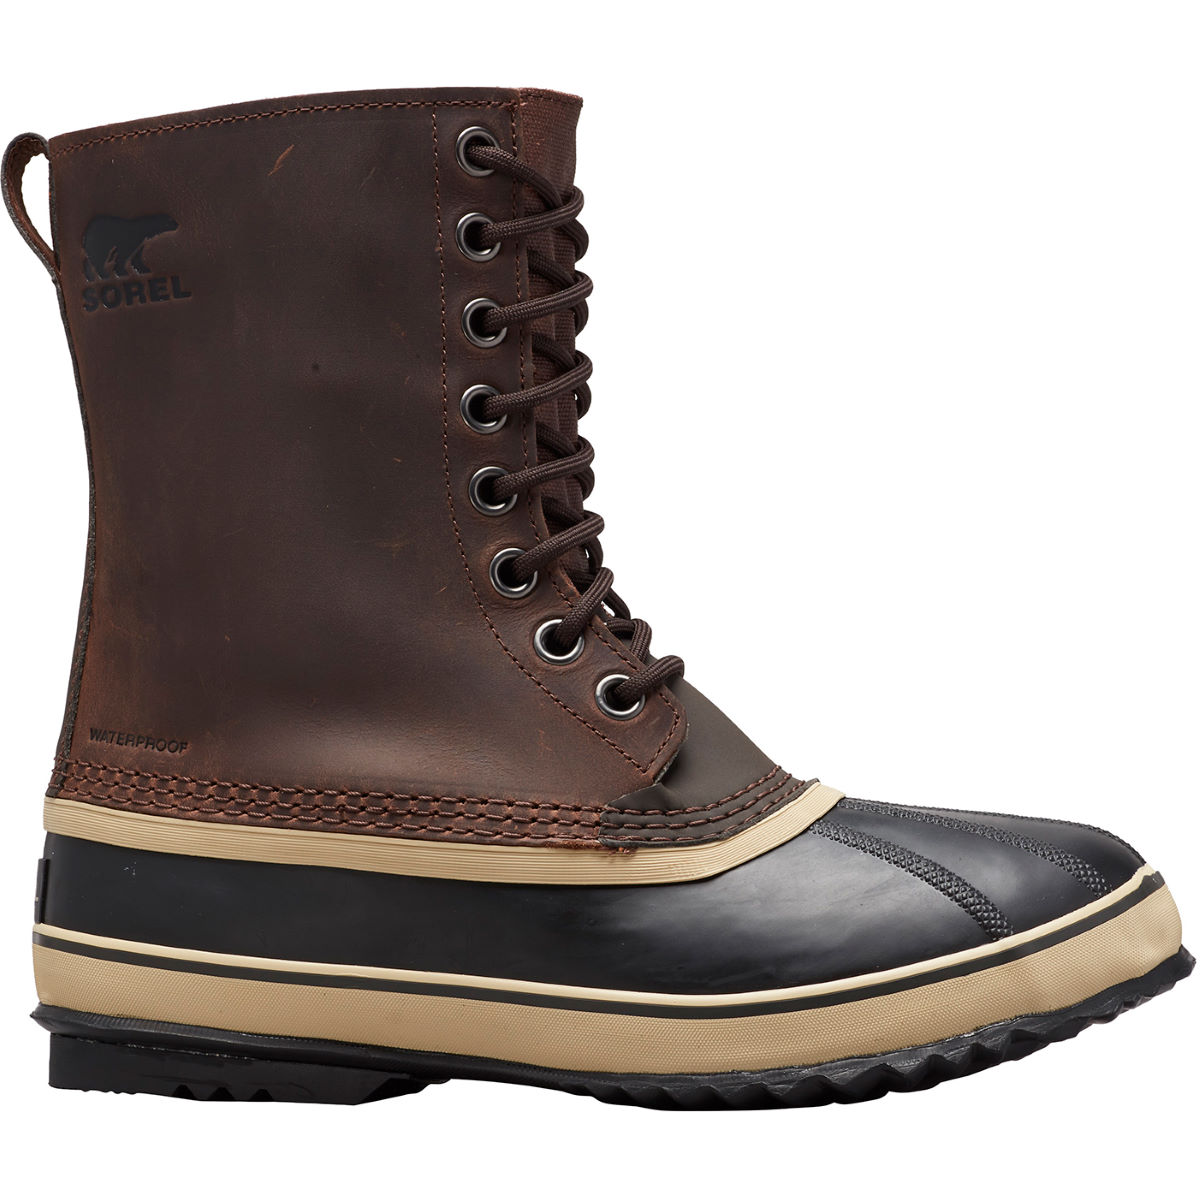 Sorel Sorel 1964 Leather Boots   Boots